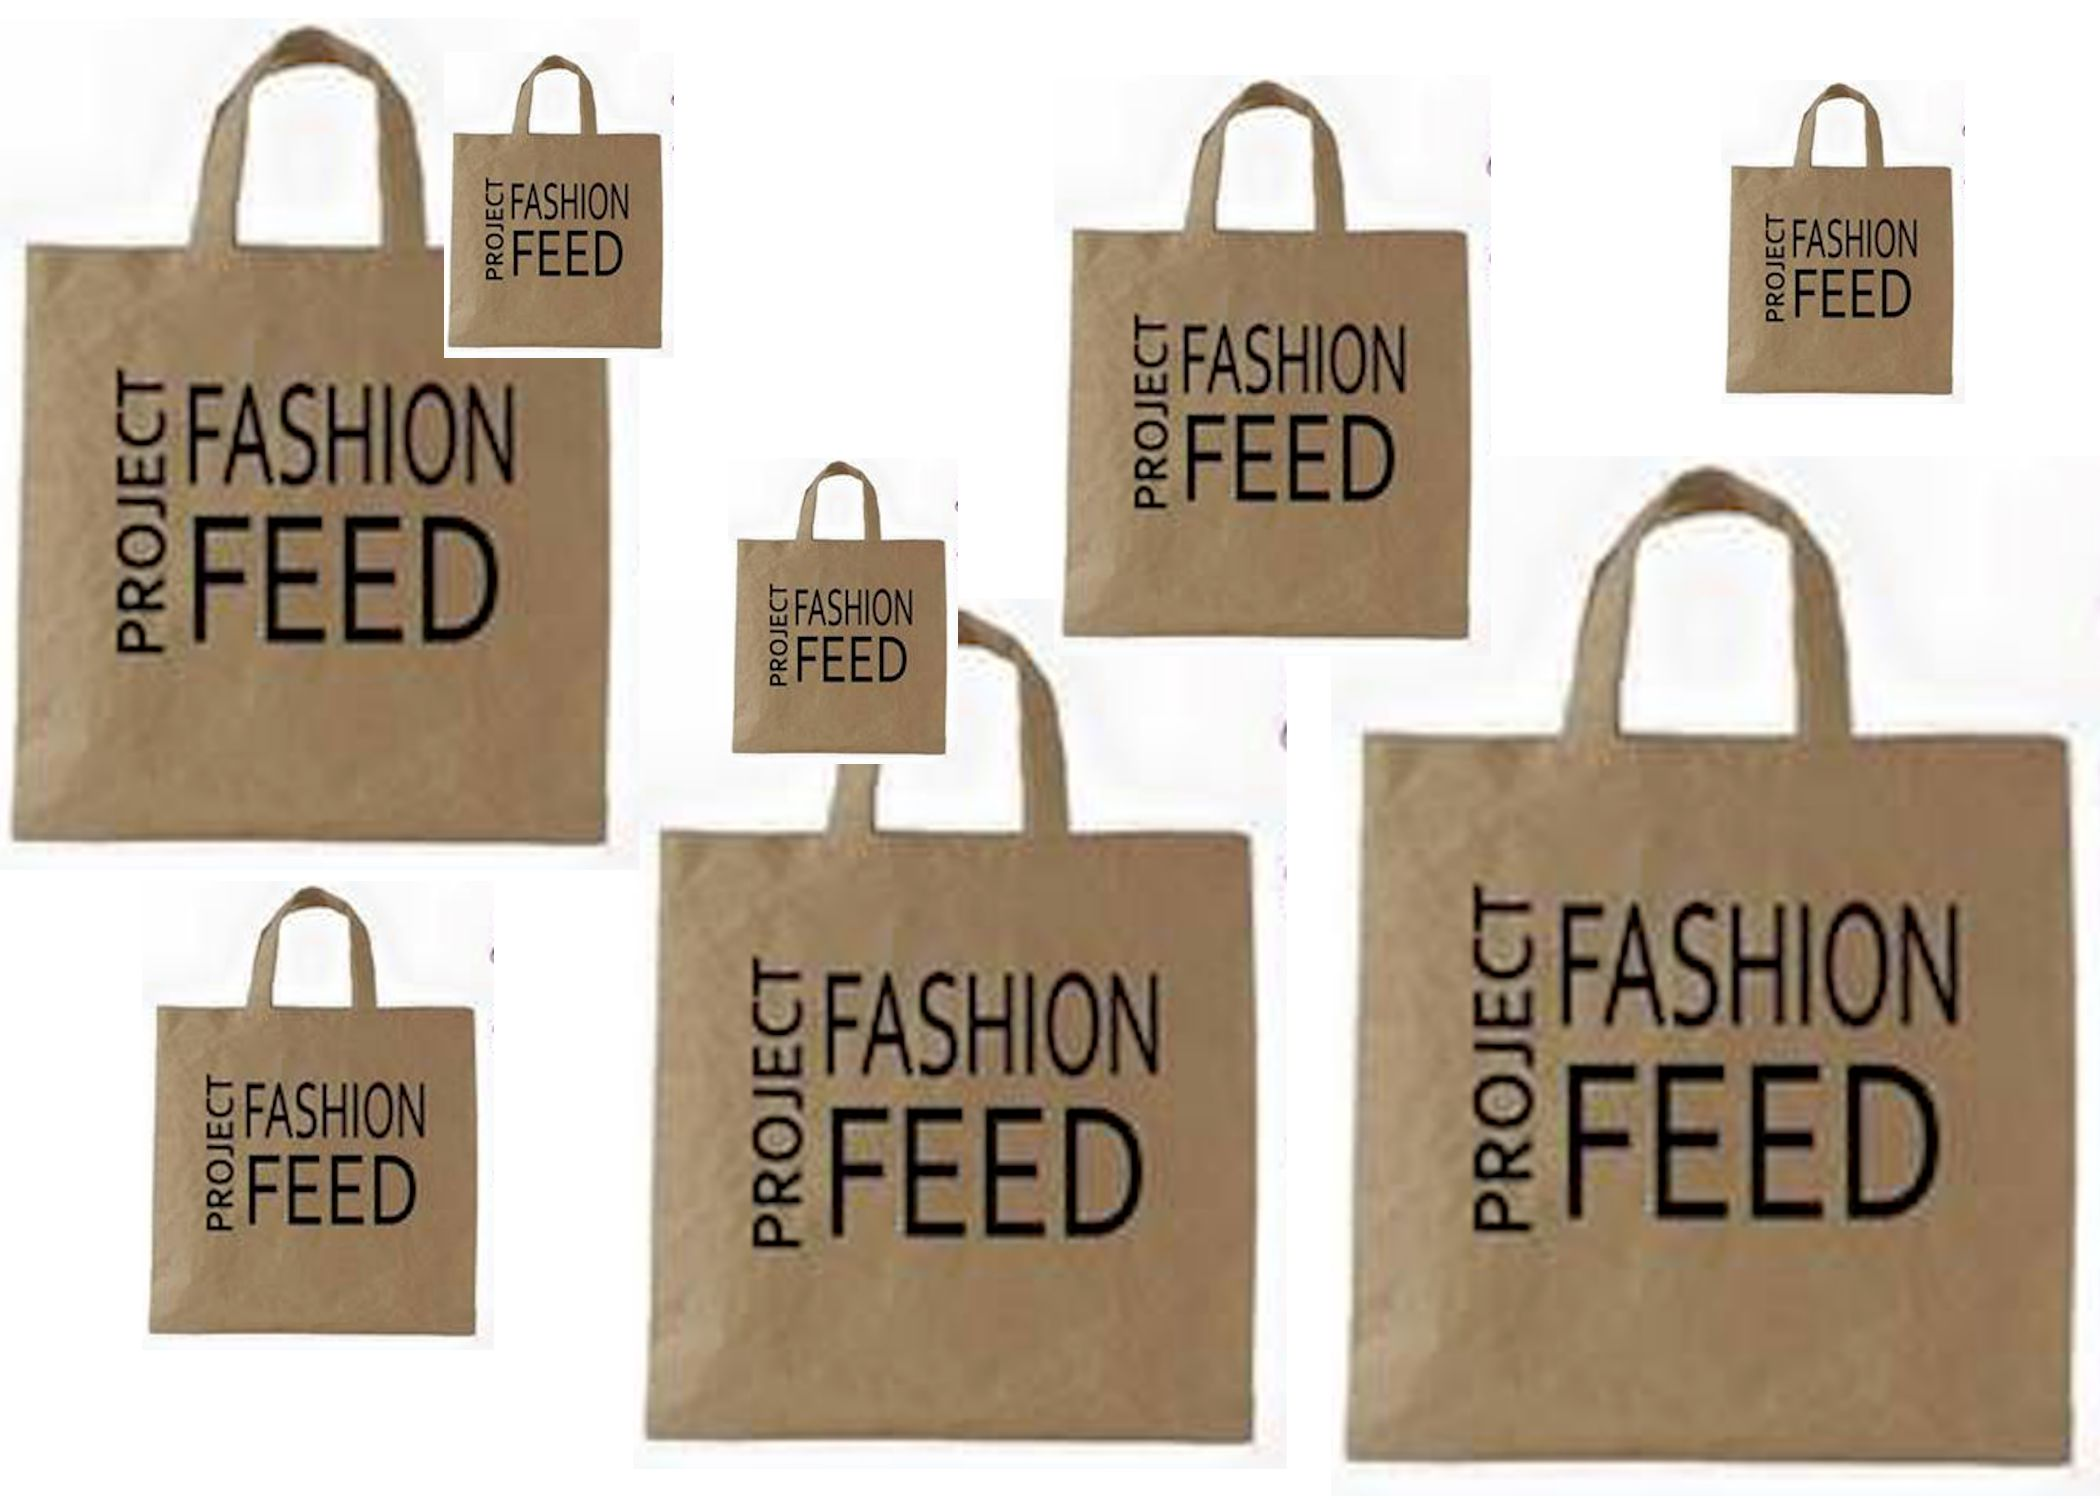 Project Fashion Feed to Help End Hunger in Our Community